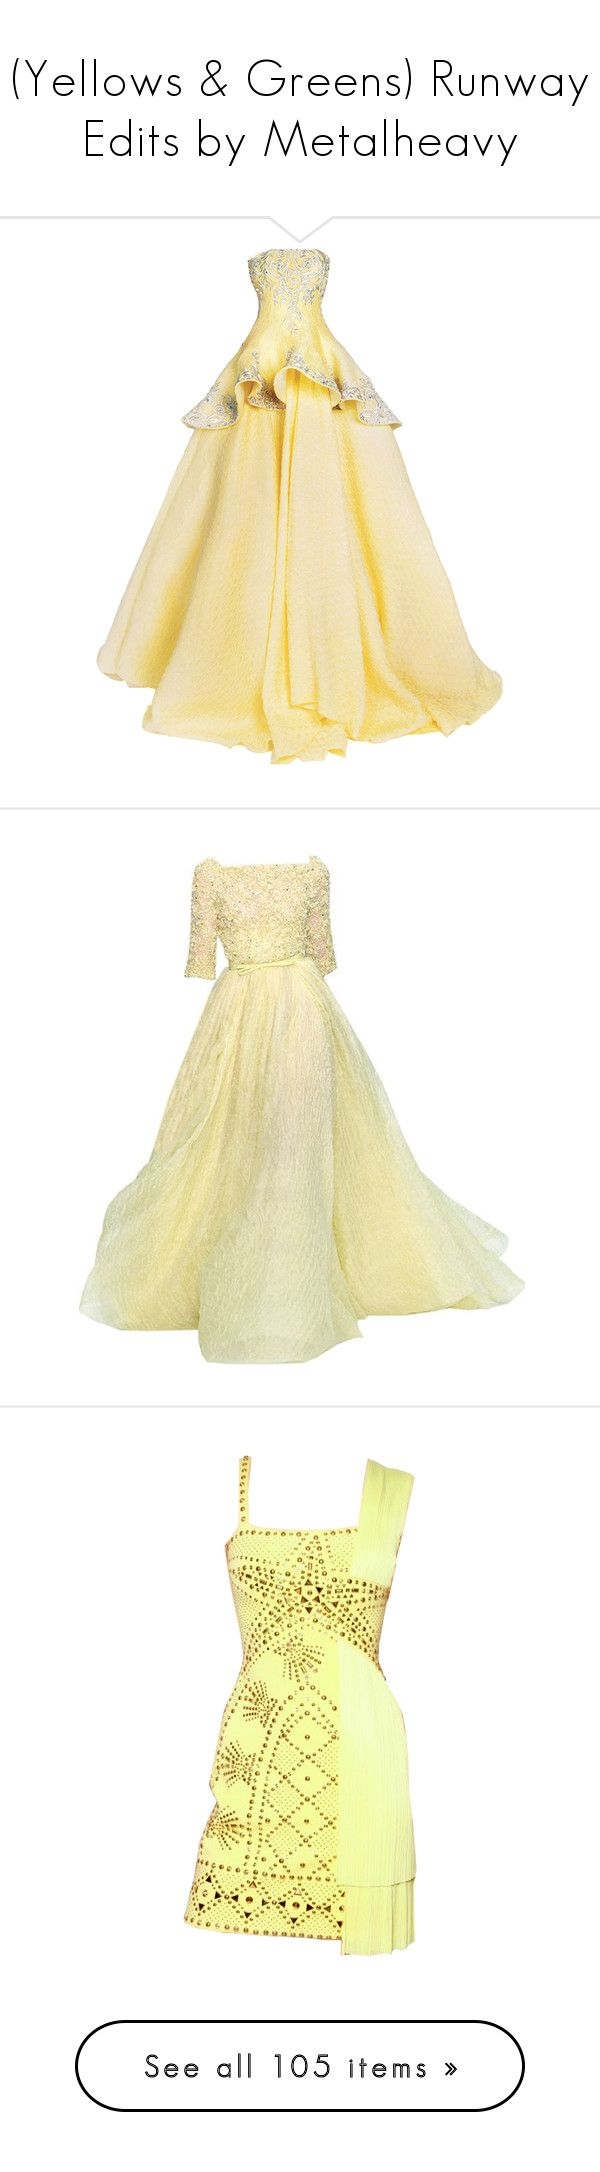 """(Yellows & Greens) Runway Edits by Metalheavy"" by metalheavy ❤ liked on Polyvore featuring dresses, gowns, long dresses, rami kadi, vestidos, elie saab, long dress, elie saab gowns, elie saab evening dresses and beige long dress"